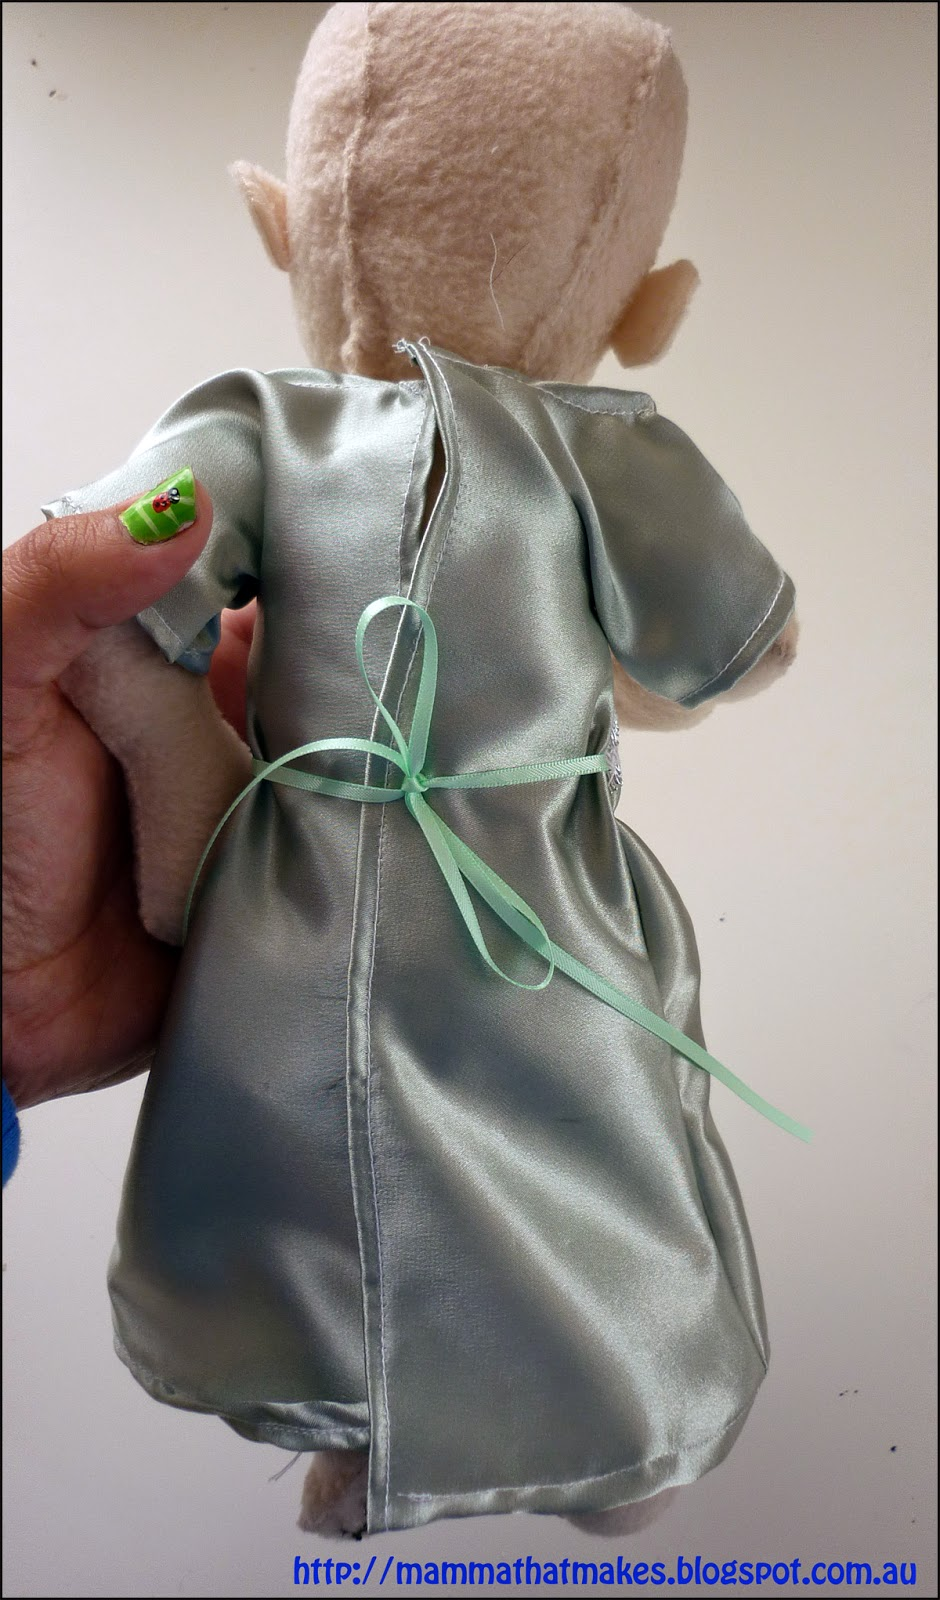 962f451ab Mamma That Makes: Burial Gown Free Sewing Pattern for Preemies ...